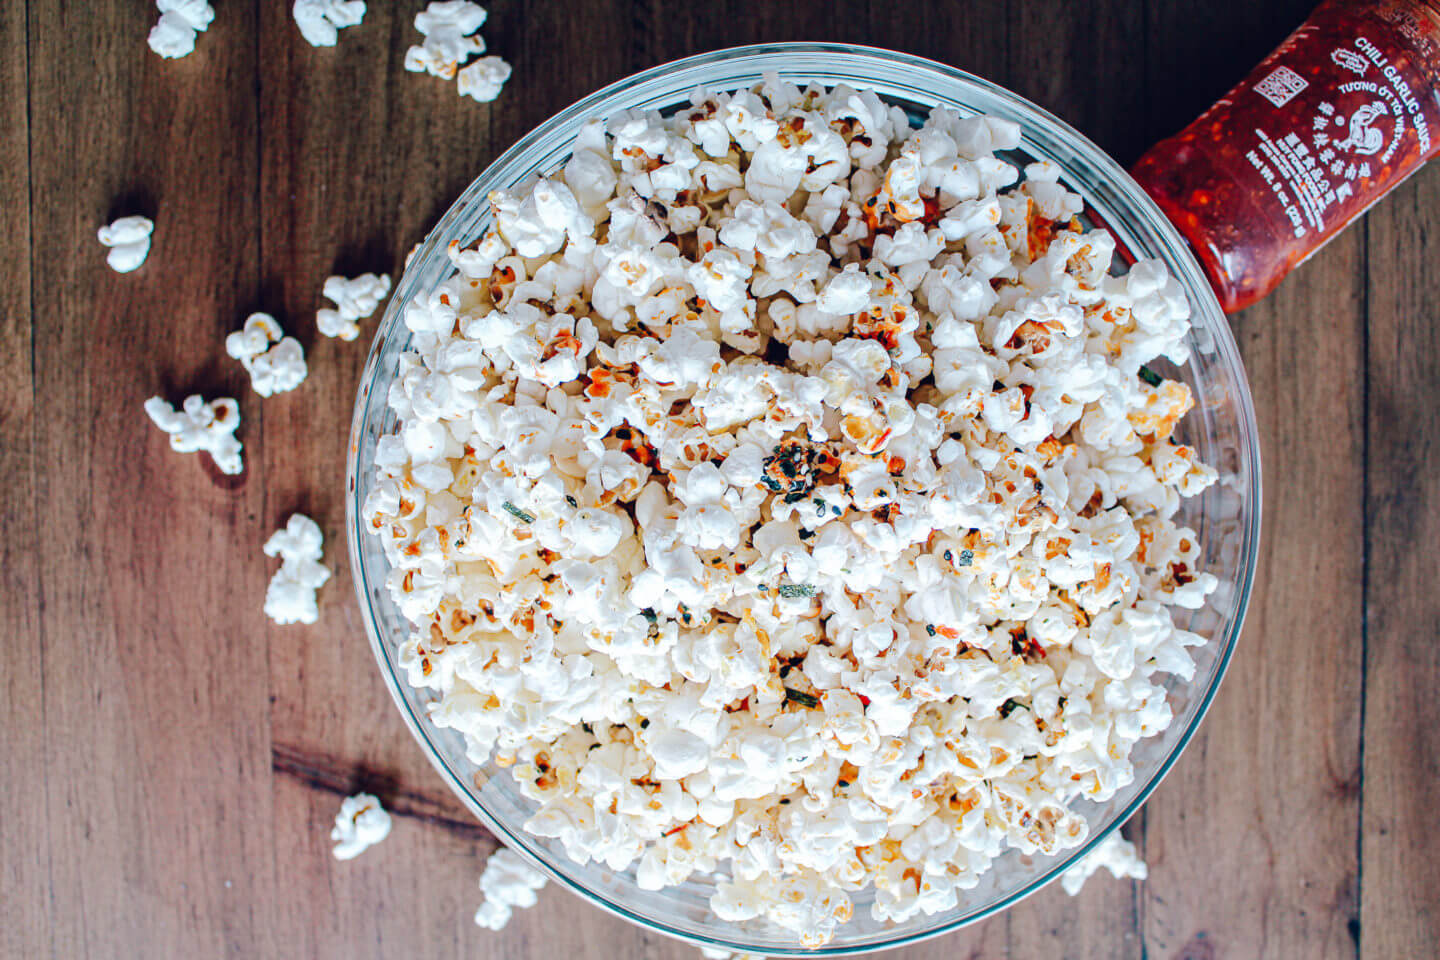 Sustainable and Plant-based Lifestyle influencer shares her delicious Spicy Seaweed Popcorn recipe!